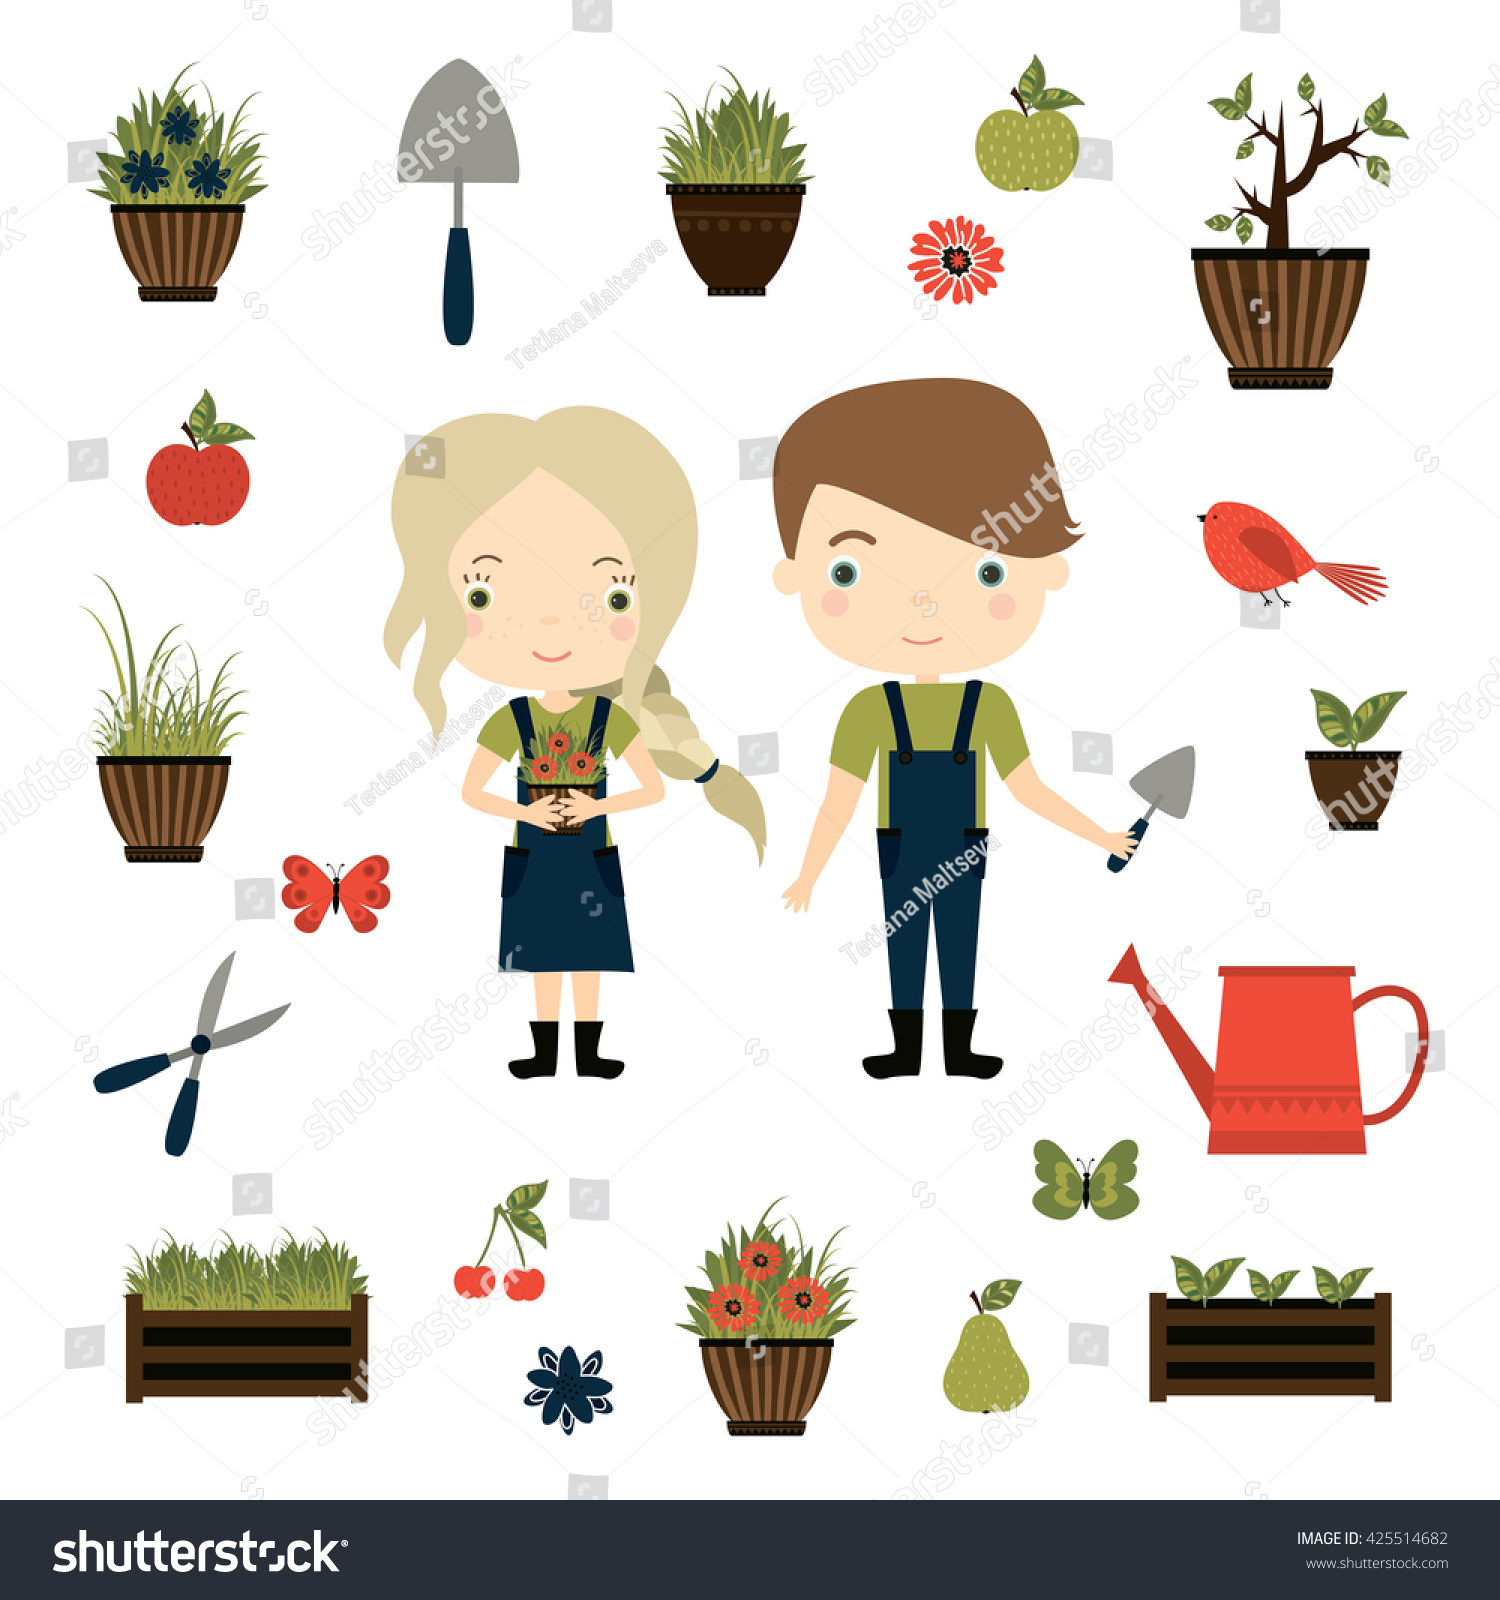 Good Gardening. Cute Girl With Flowerpot And Boy With Garden Tools. Vector Set